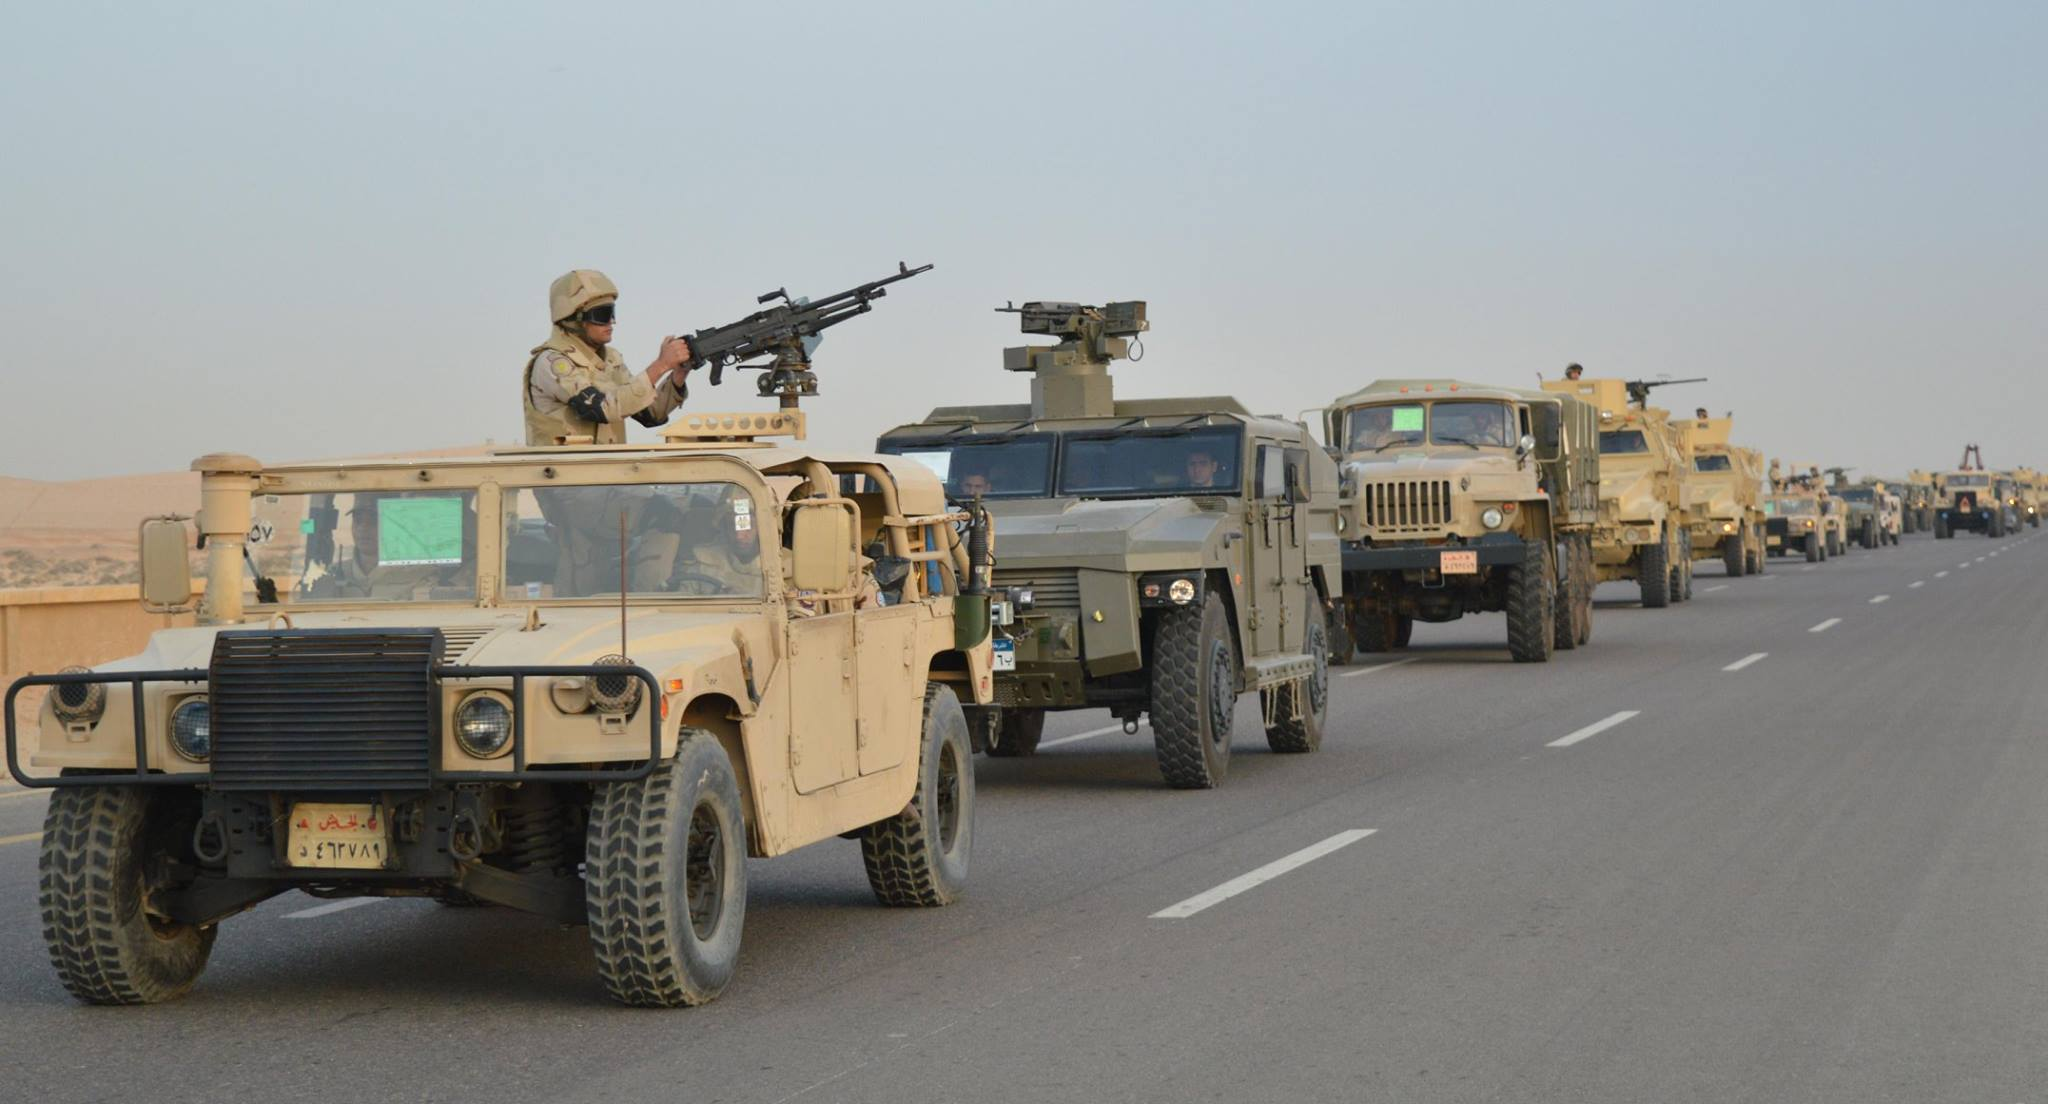 Egyptian Army Develops Military Operation Against ISIS In Sinai, Destroy Dozens Of Militant Positions (Photos, Video)